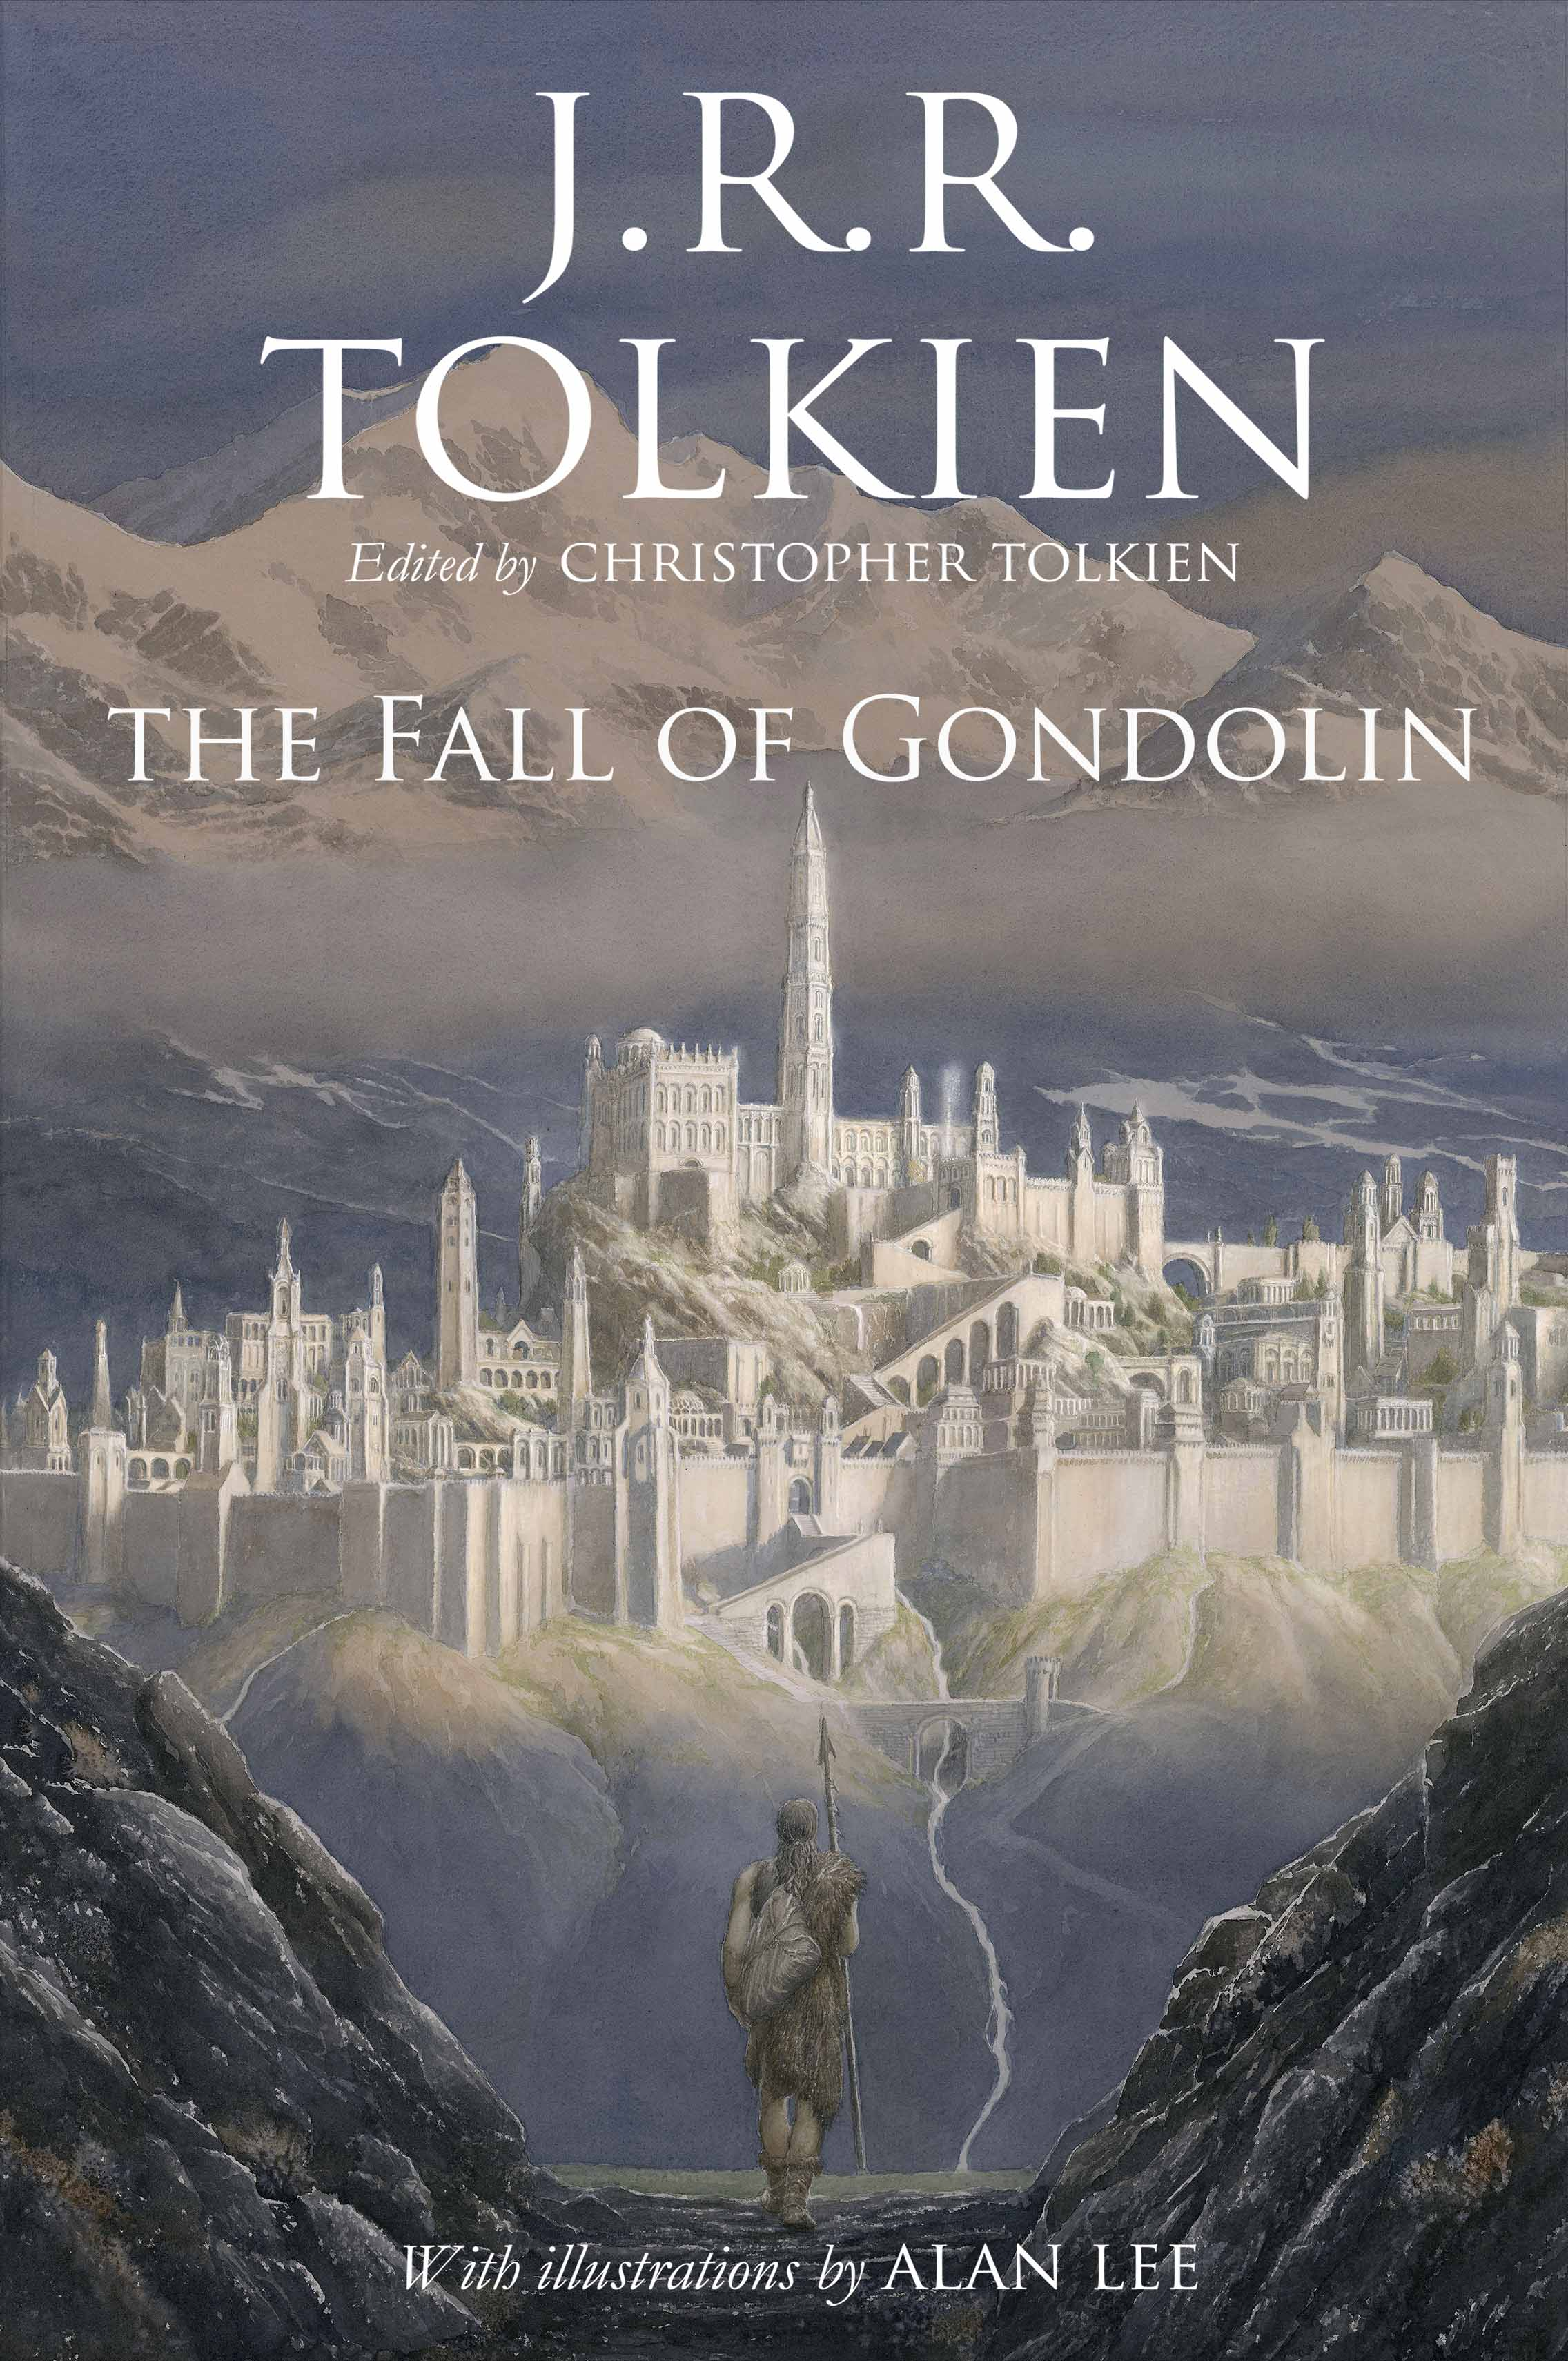 the fall of gondolin.jpg